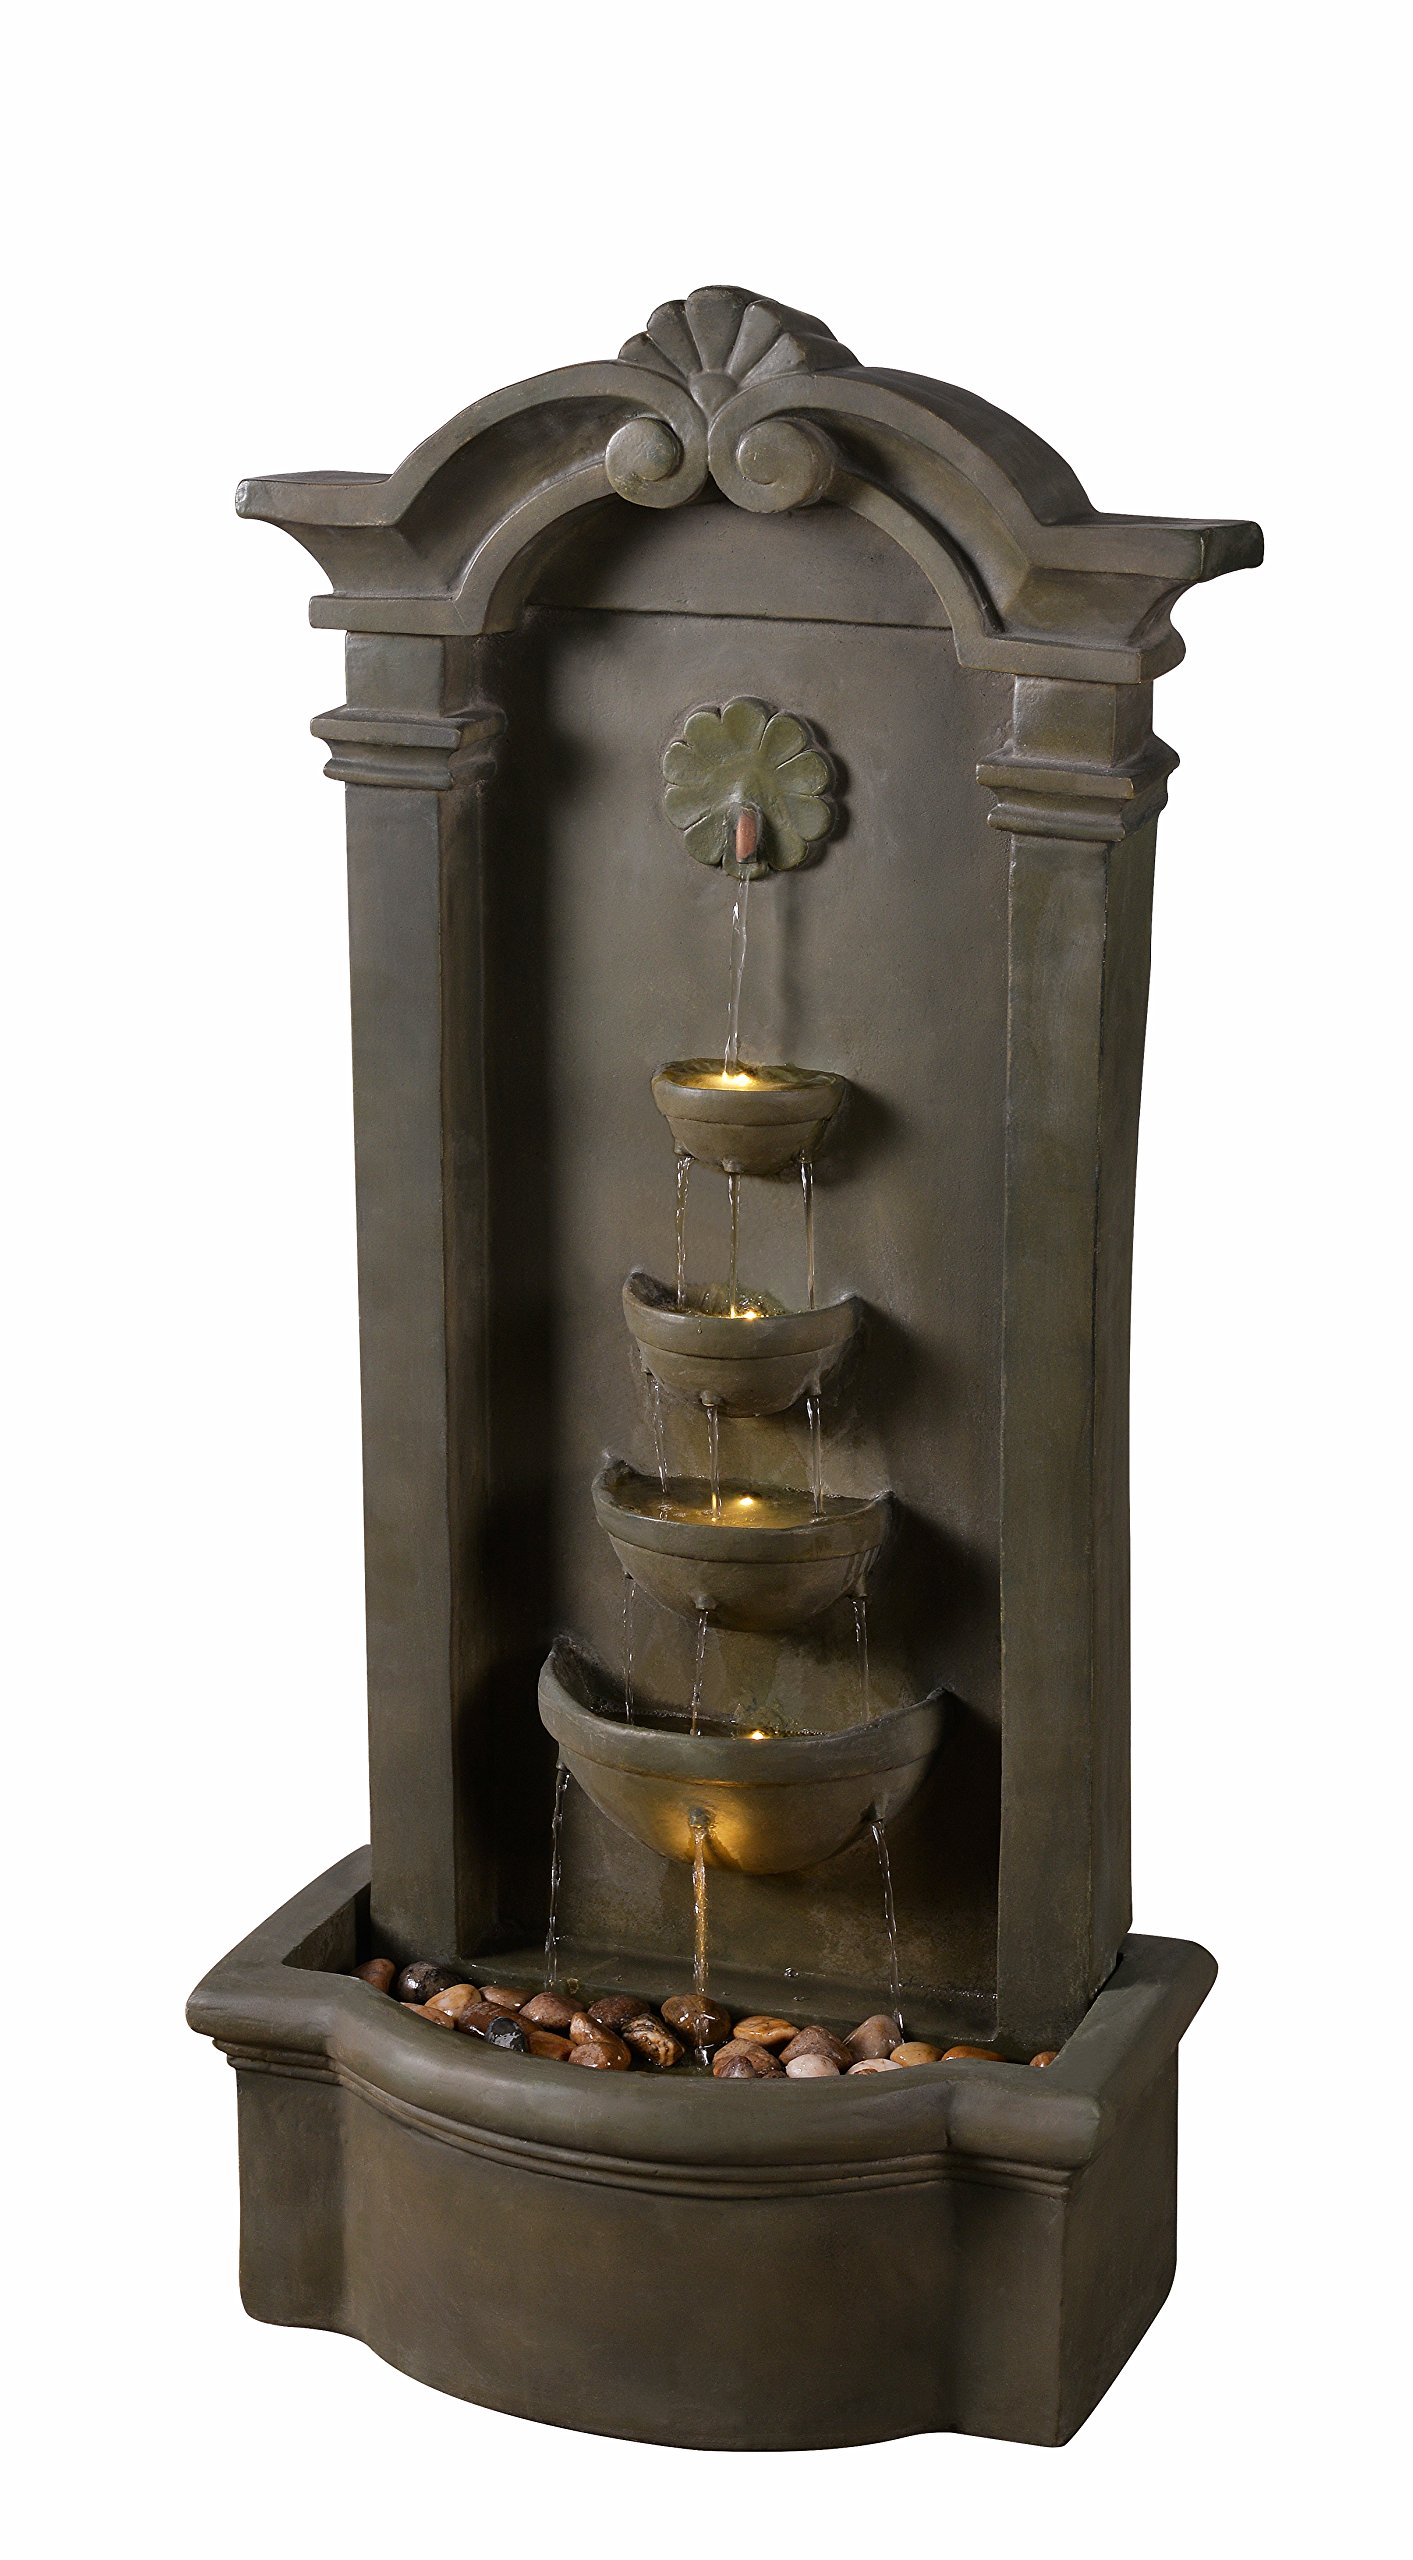 Kenroy Home 51021MS Cathedral Indoor/Outdoor Floor Fountain, 44 Inch Height, Moss Stone